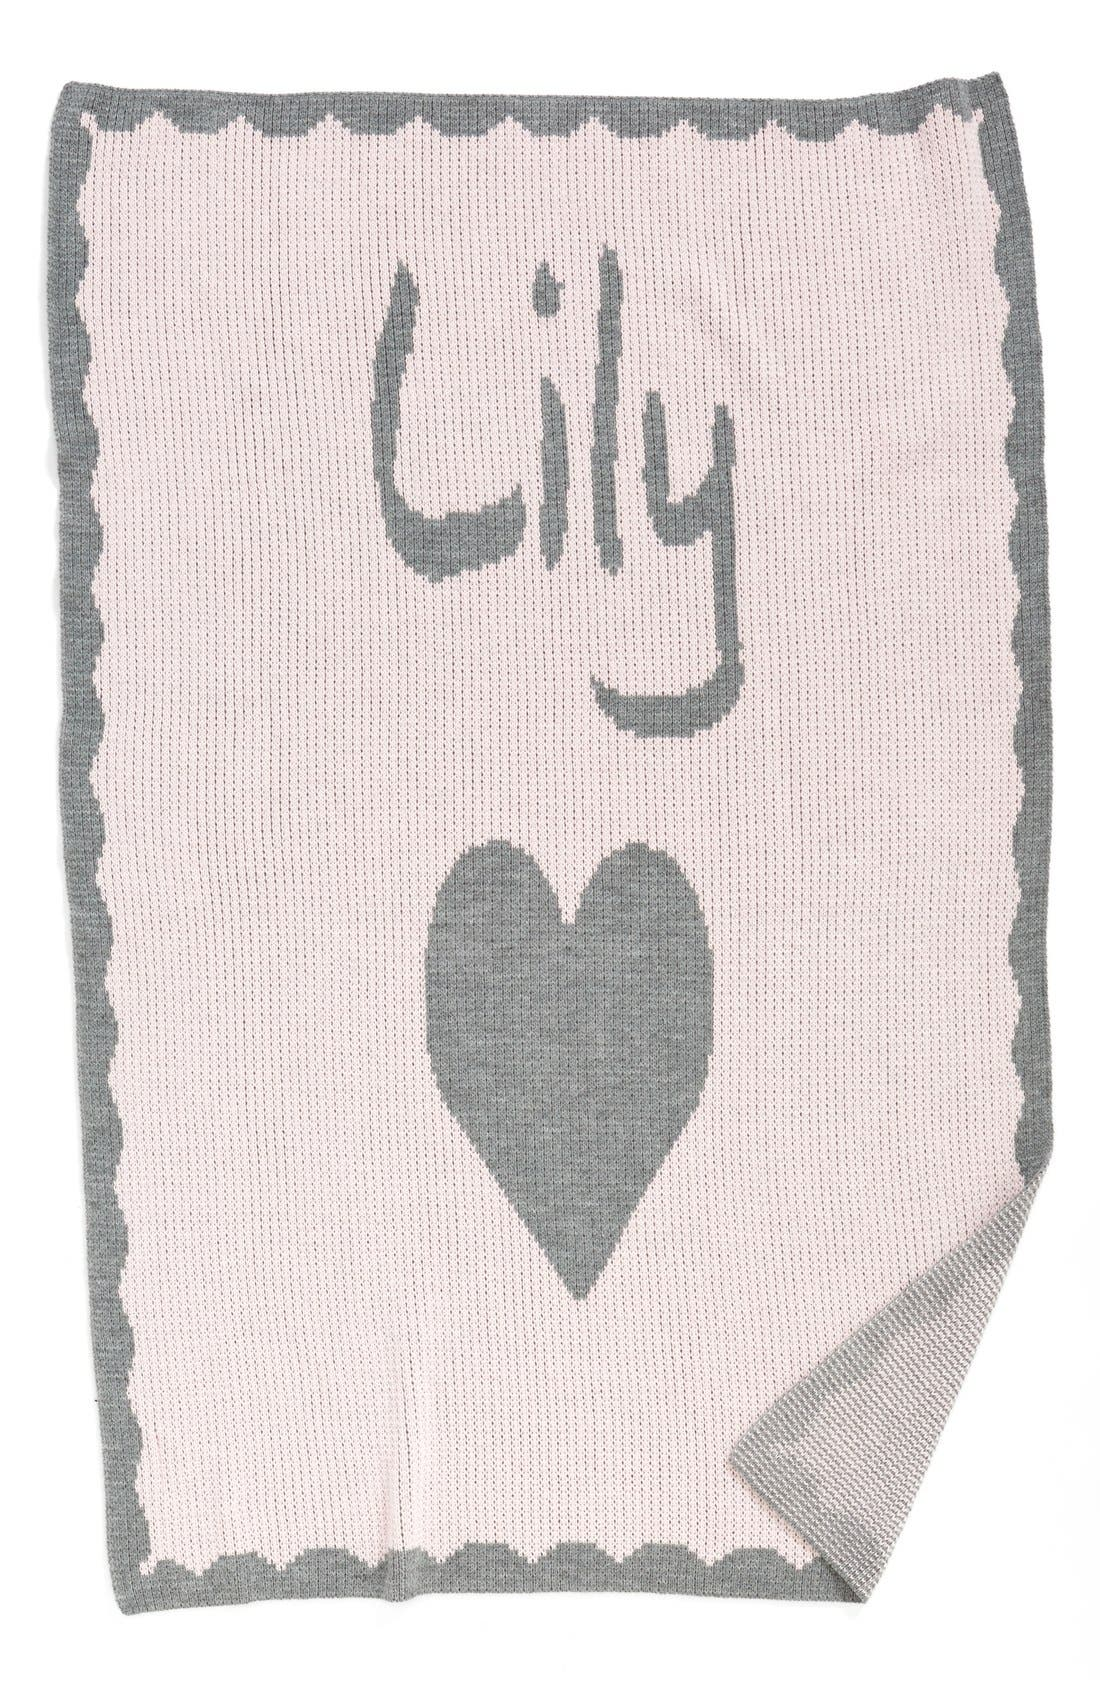 Main Image - Butterscotch Blankees 'Heart' Personalized Crib Blanket